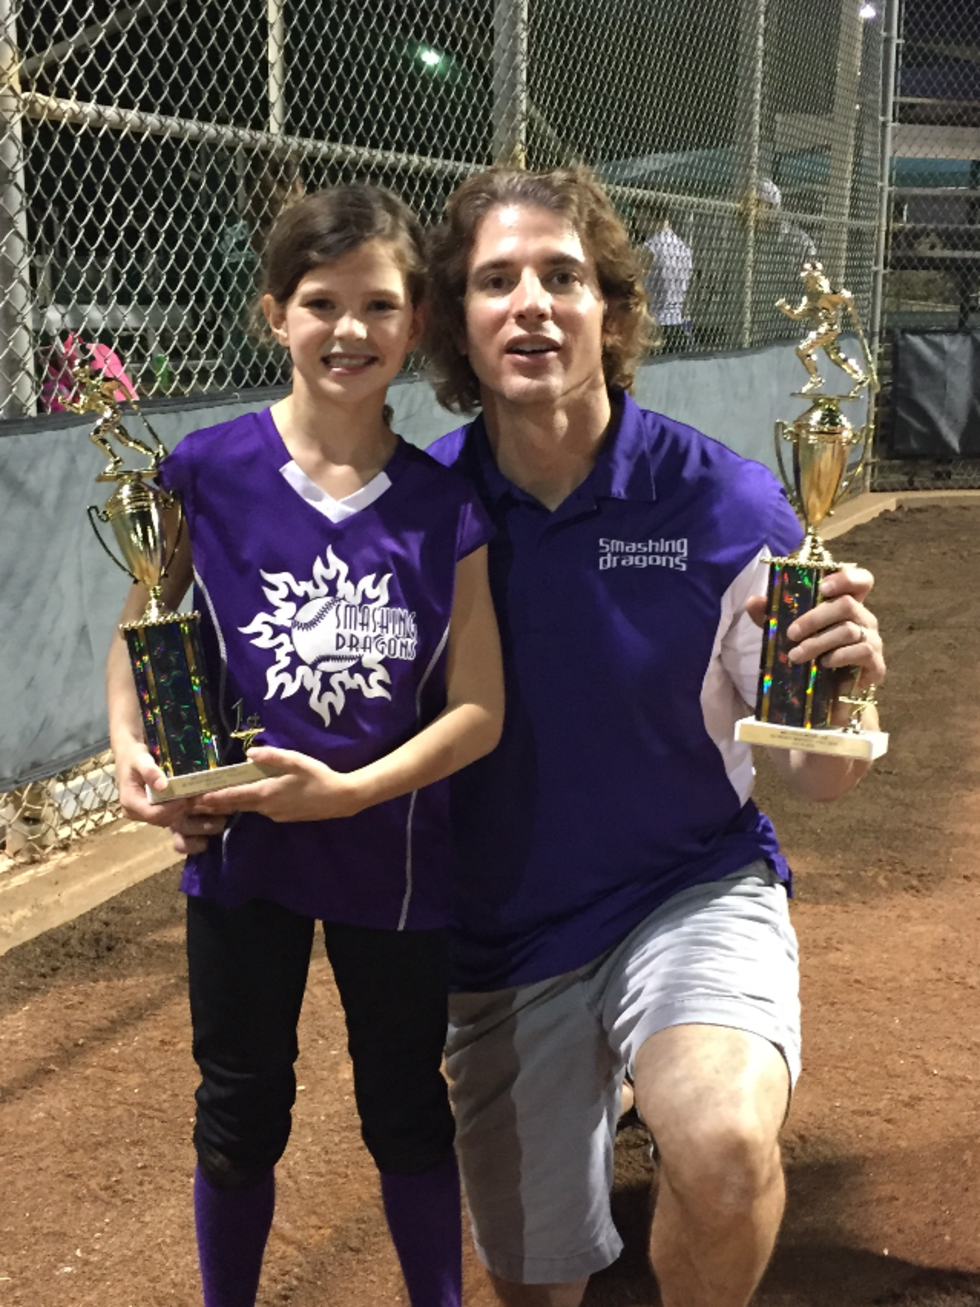 Chris McDowell and daughter at softball